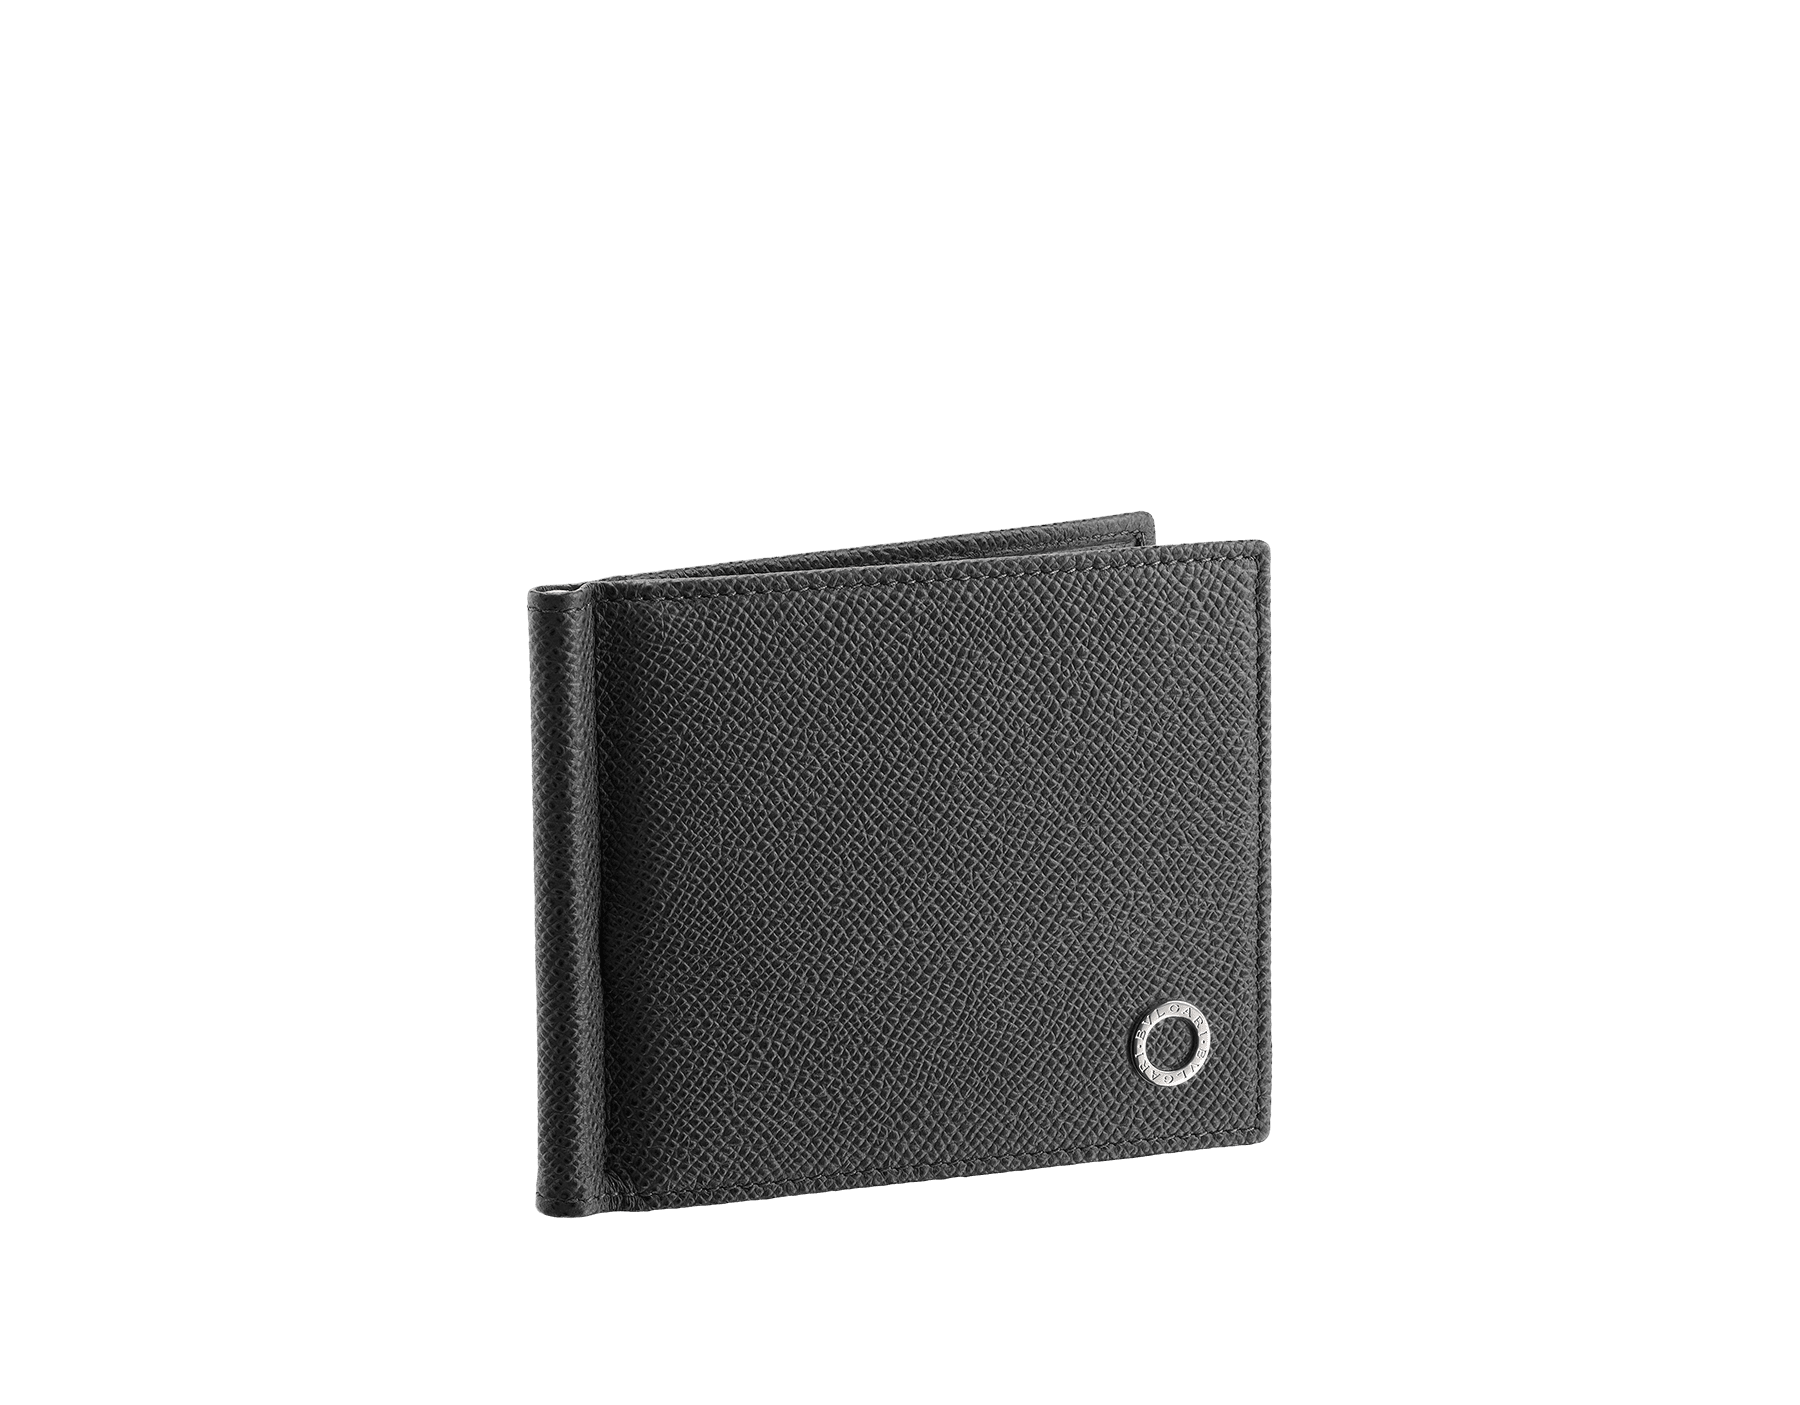 Wallet hipster for men in black grain calf leather with bill clip. Brass palladium plated hardware featuring the BVLGARI BVLGARI motif. BBM-WLT-HIP-CLI-8C image 1